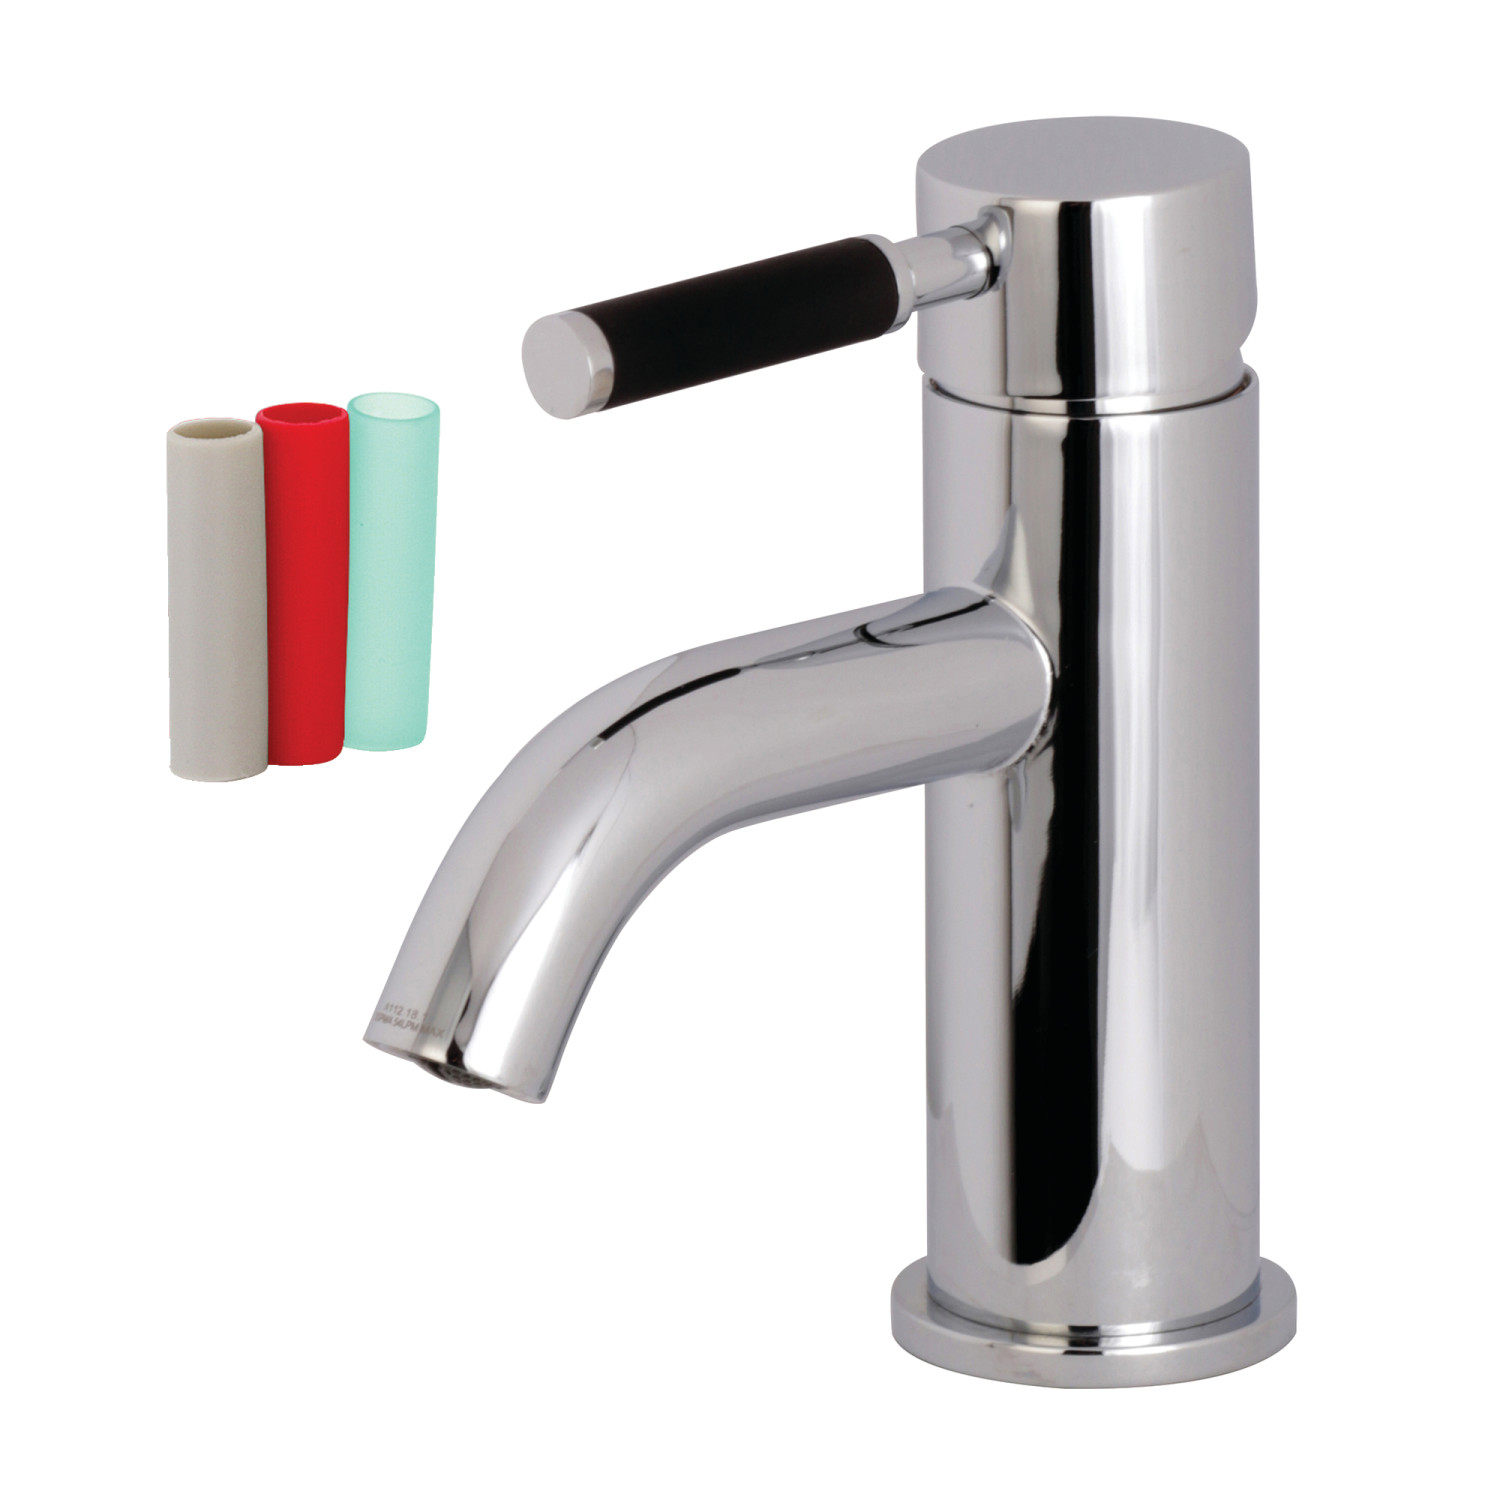 Single-Handle 1-Hole Deck Mounted Bathroom Faucet in Polished Chrome with 5 Finish Options